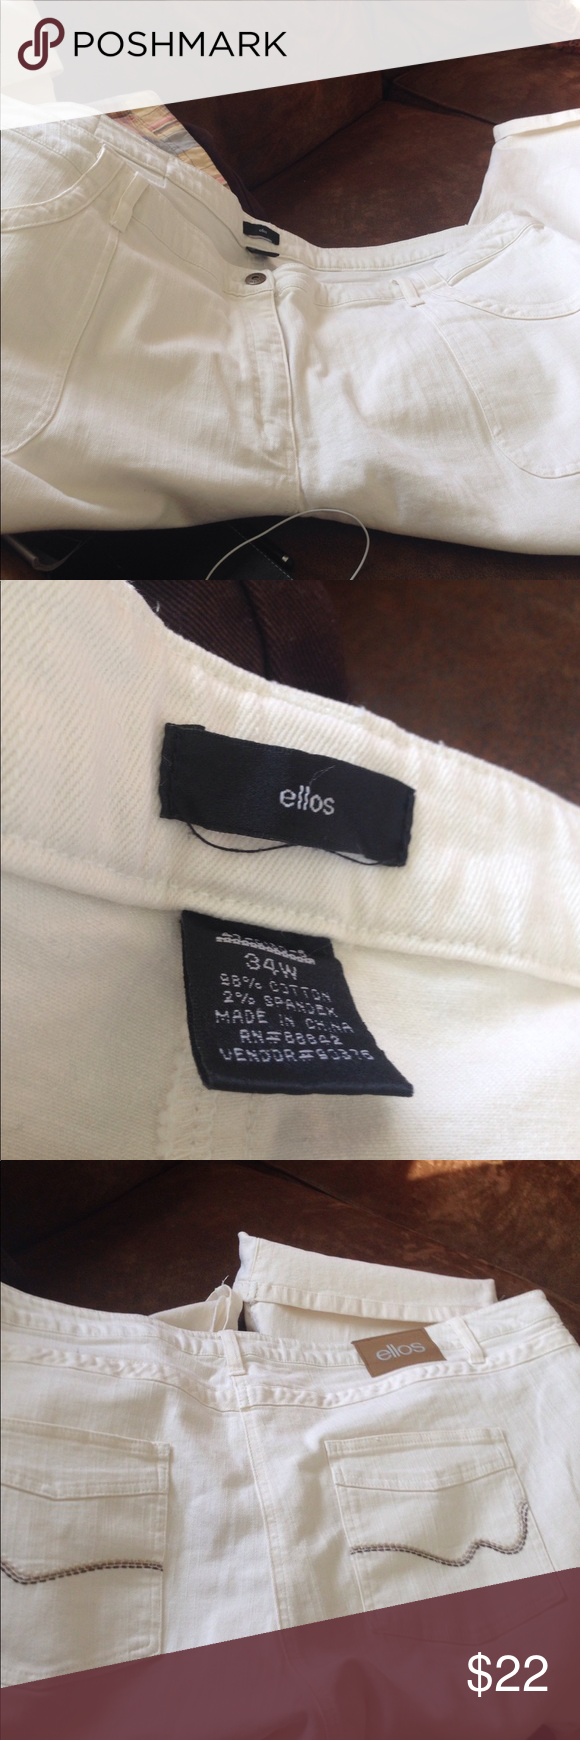 dbe131f4a2ca3 Ellos Capri Jeans Off white with brown stitching